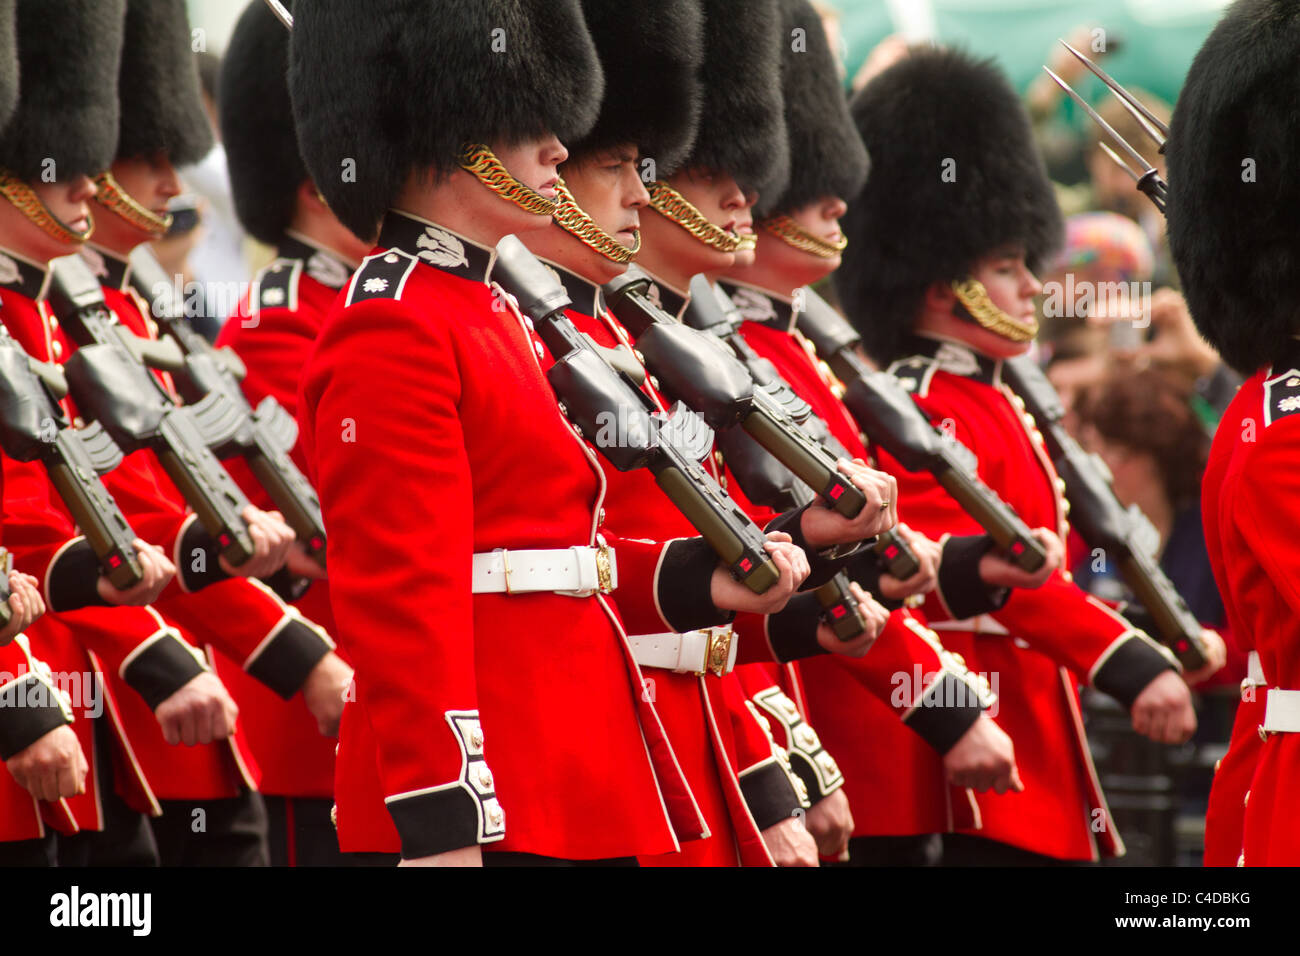 Coldstream Guards march away after the royal wedding of Prince William and Kate Middleton, April 29, 2011, London, - Stock Image